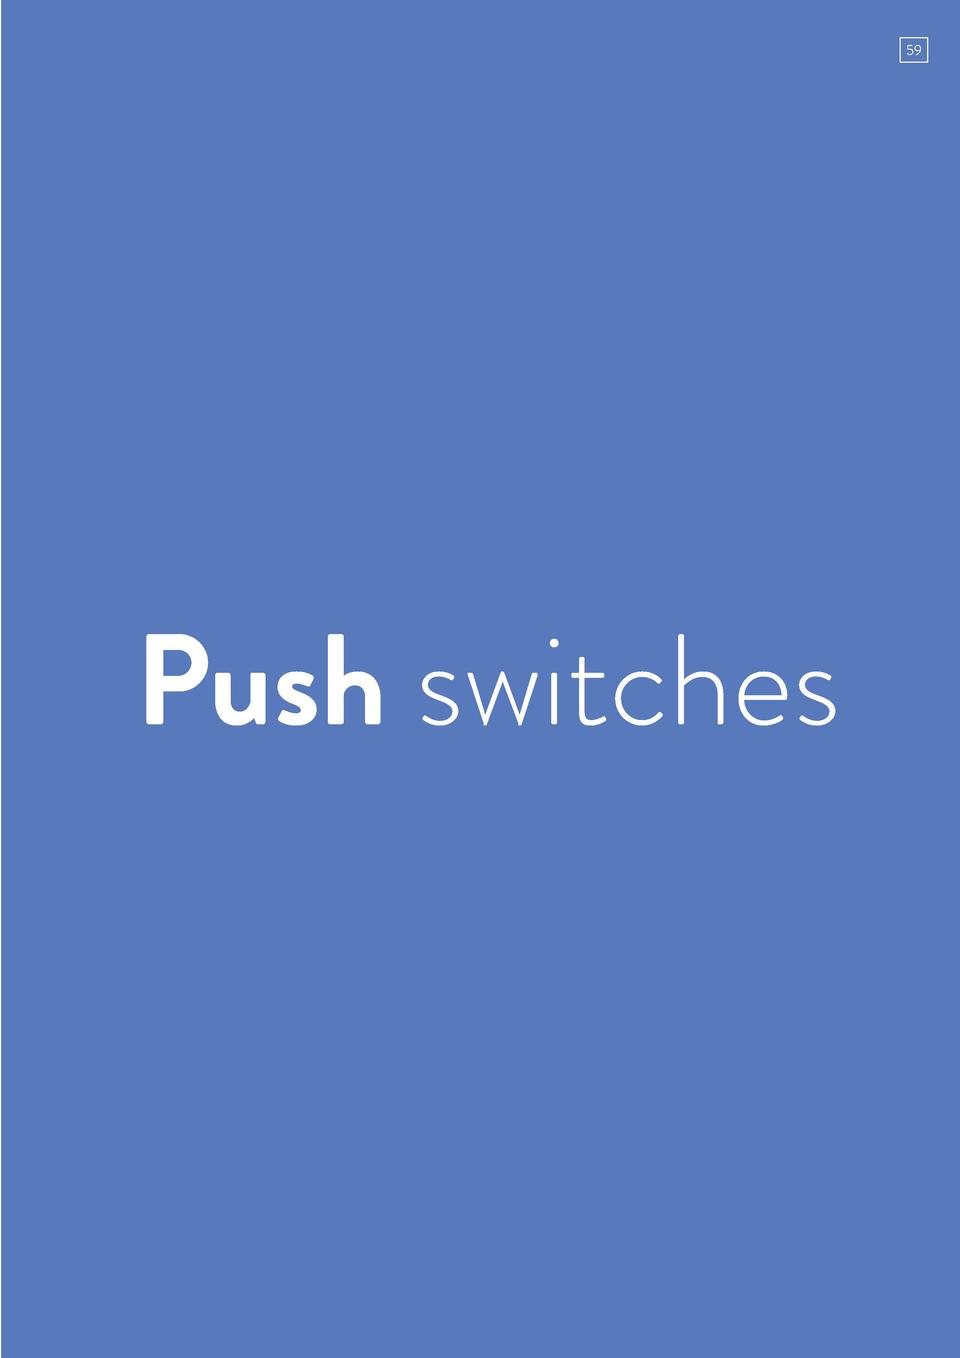 59  Push switches